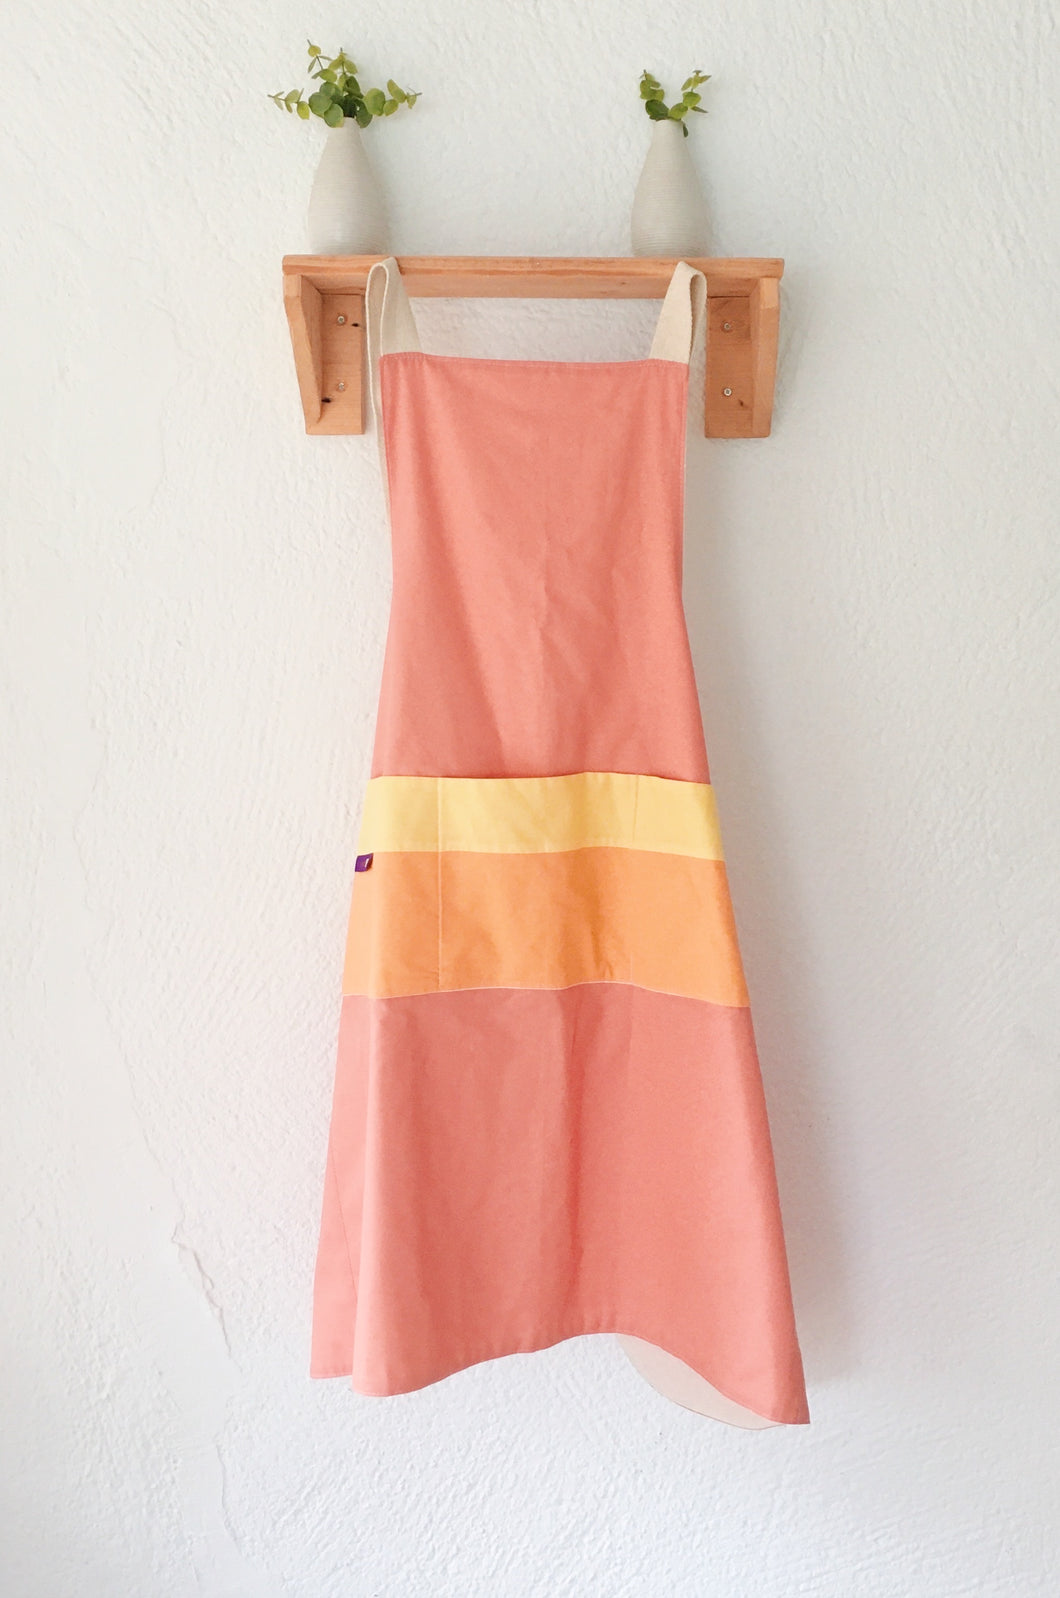 Apron Scandinavian design citrus Crossback